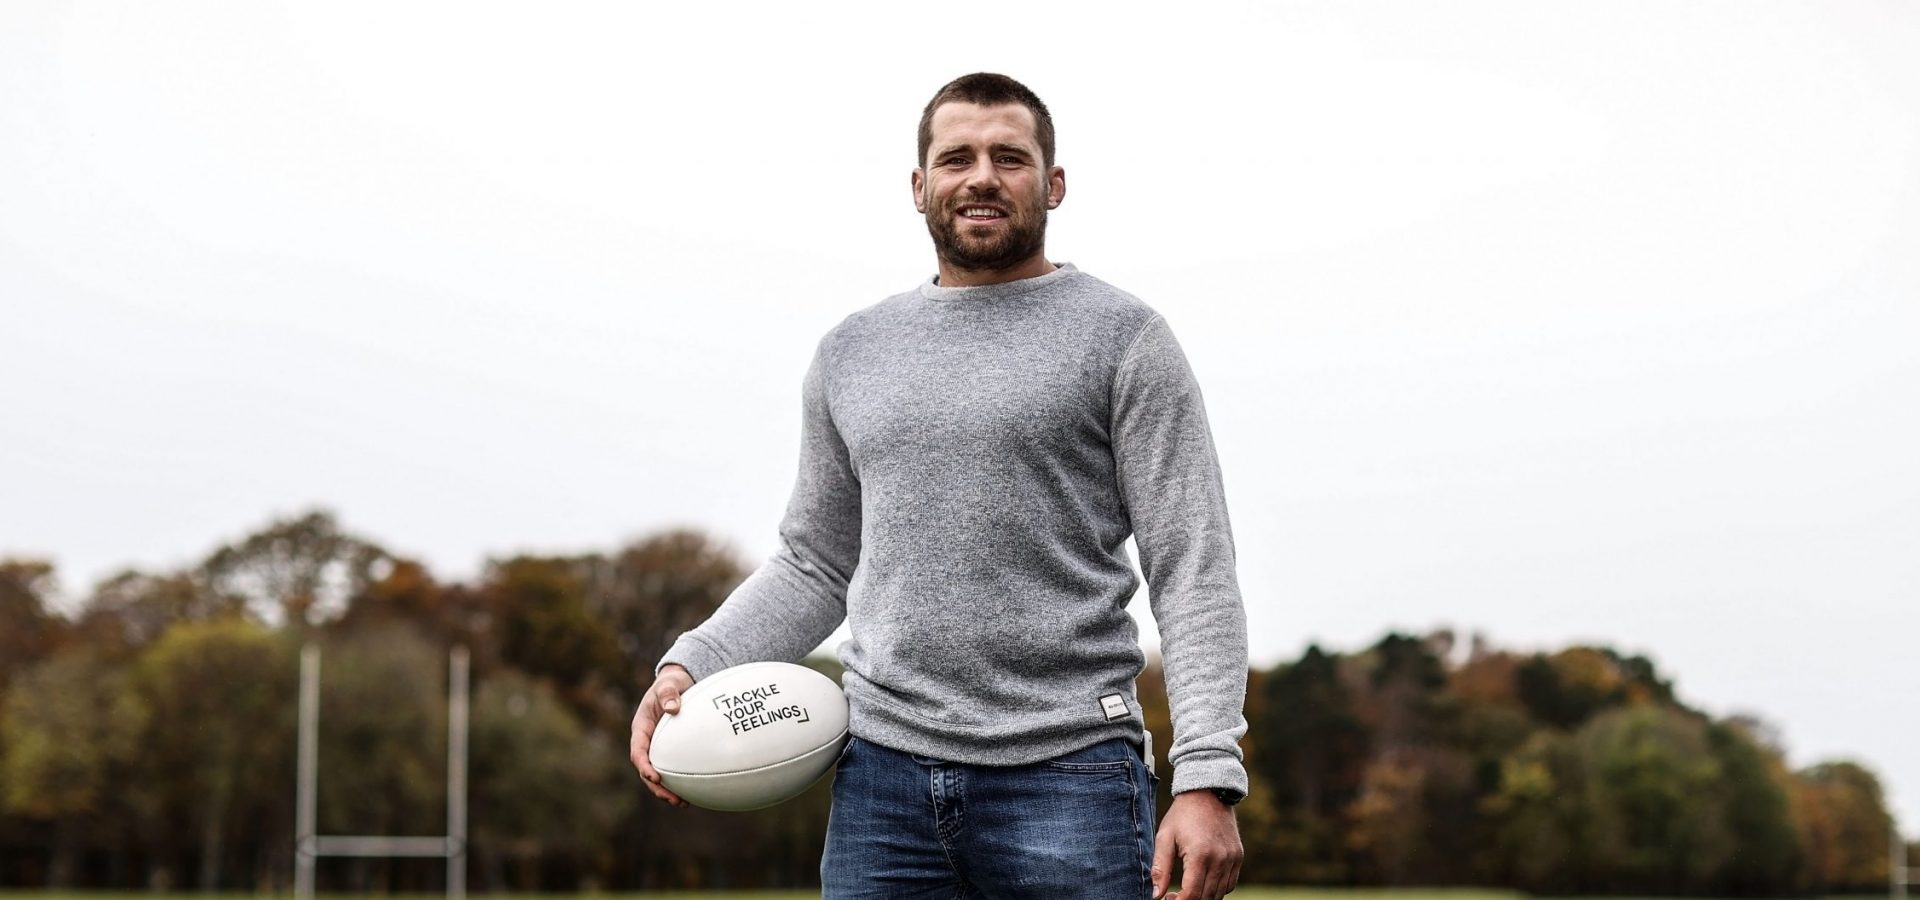 CJ Stander joins forces with Tackle Your Feelings